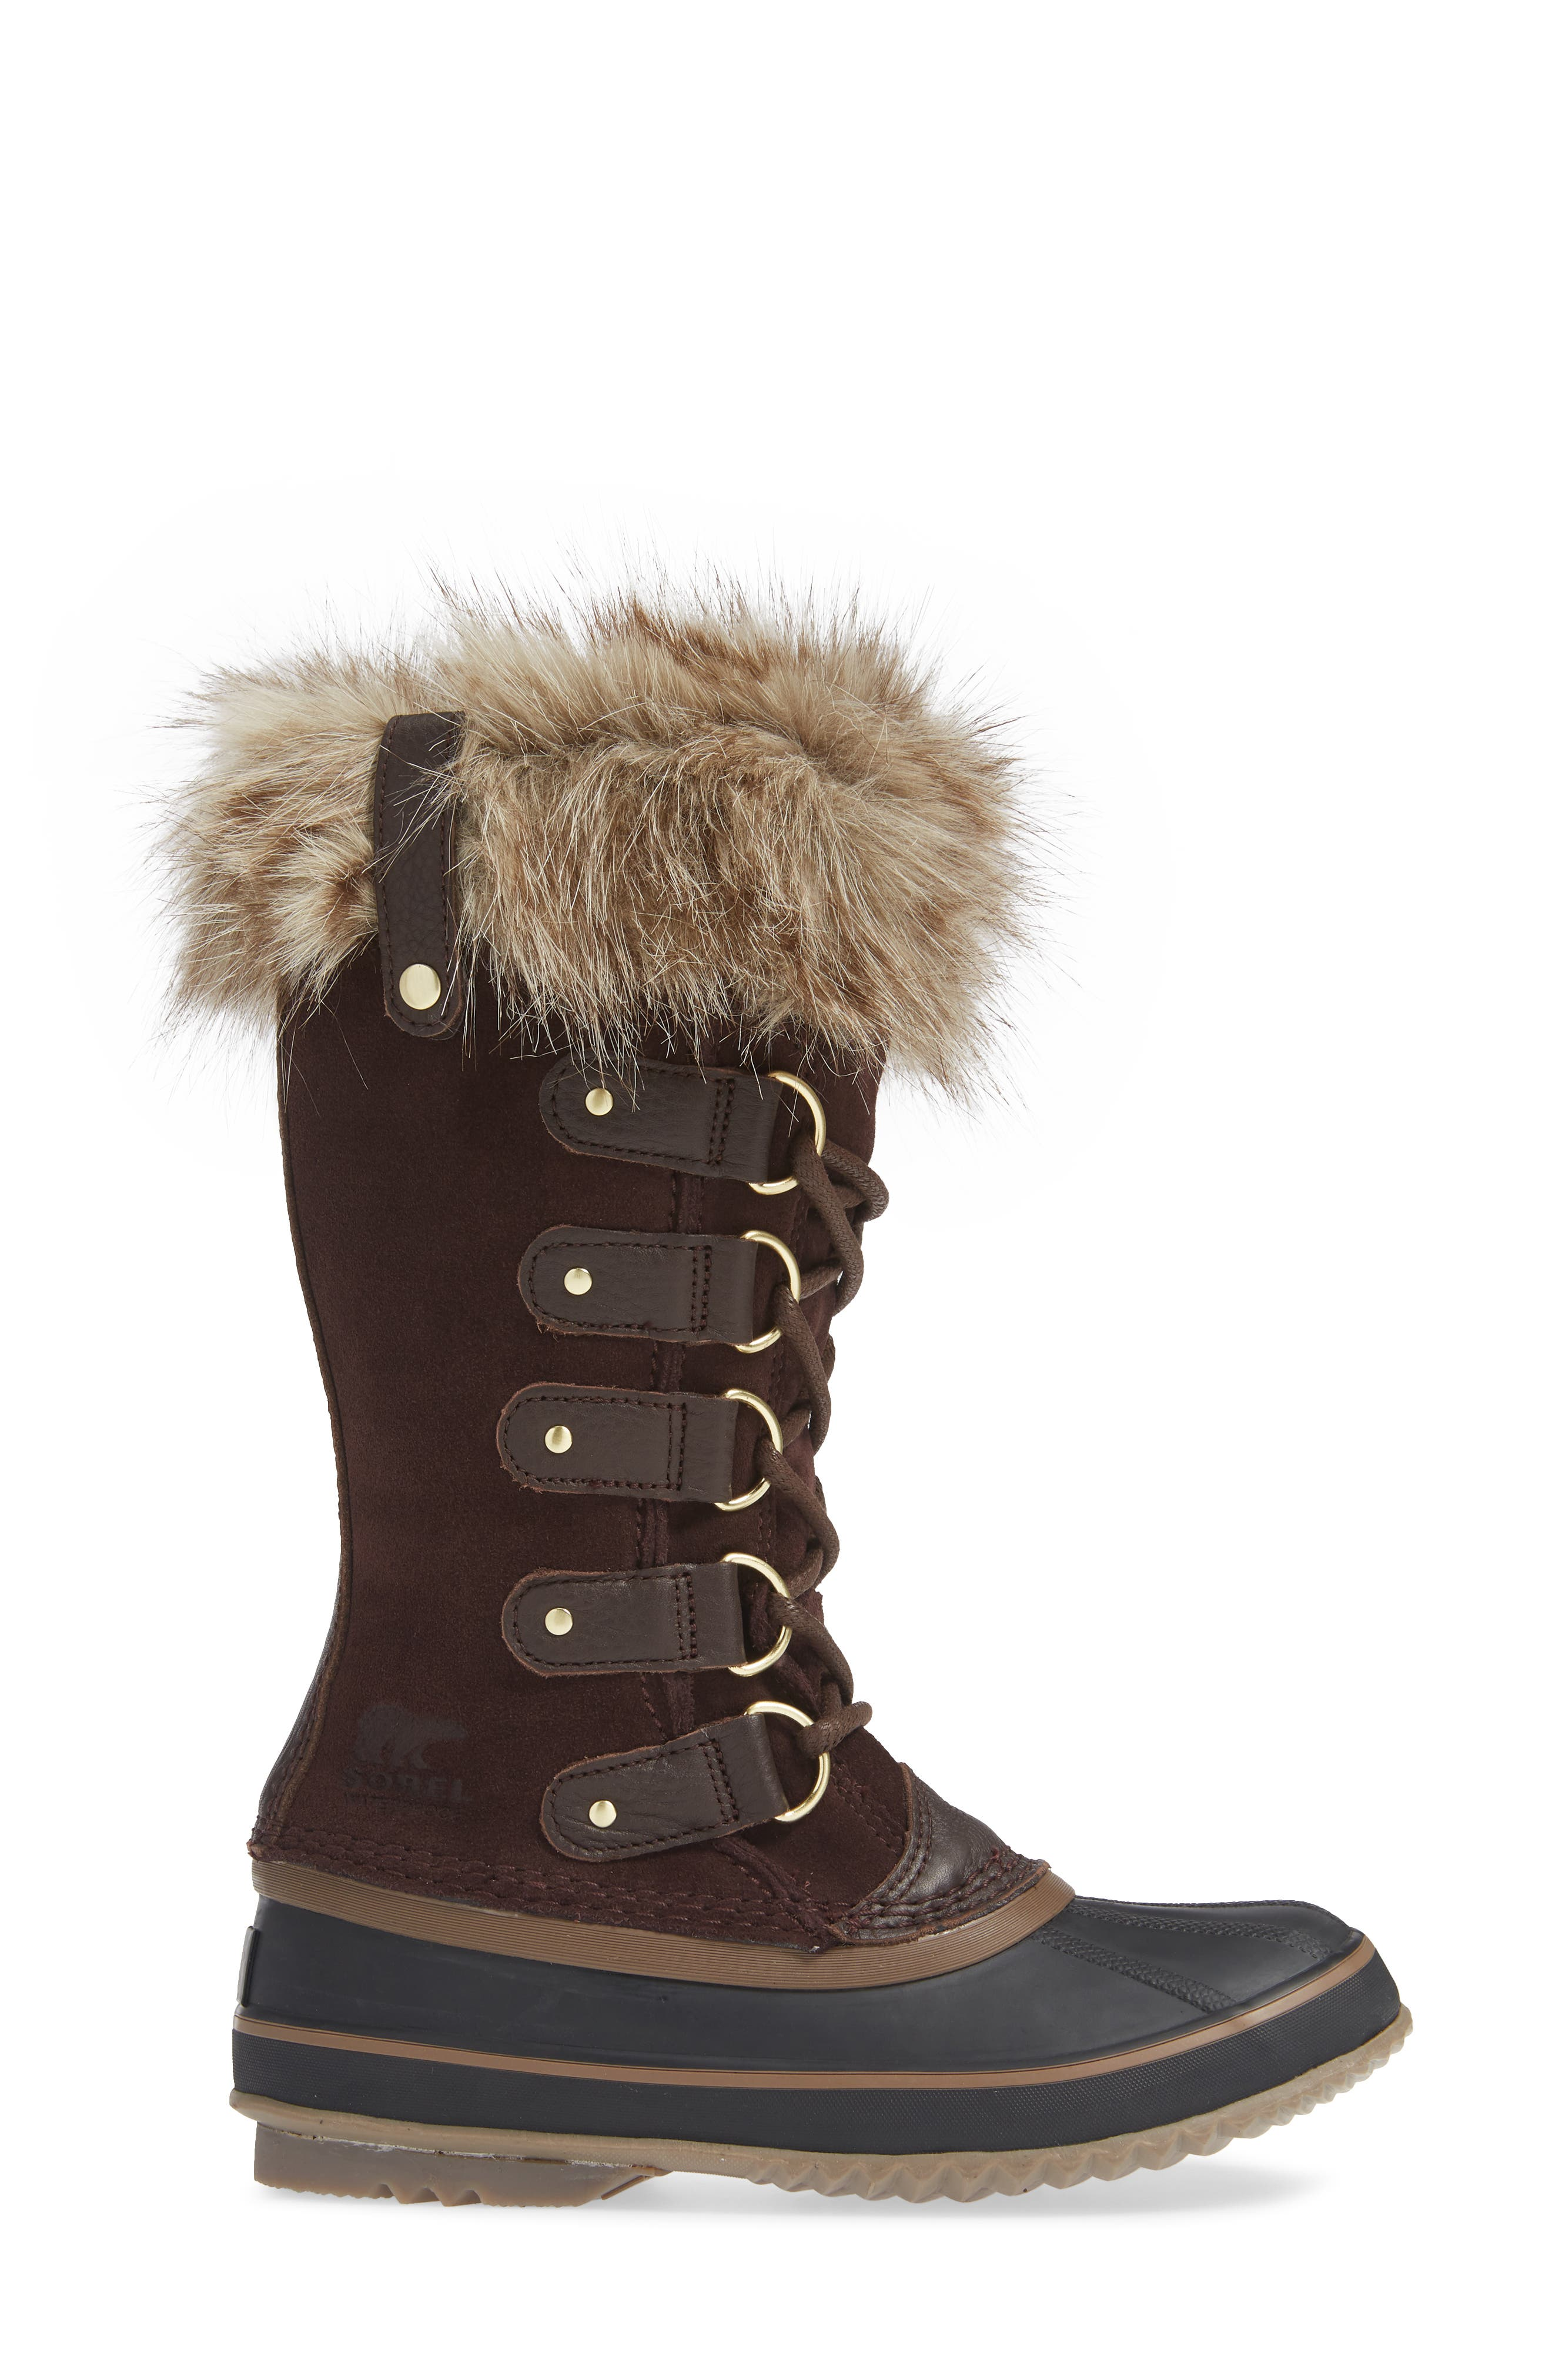 'Joan of Arctic' Waterproof Snow Boot,                             Alternate thumbnail 3, color,                             CATTAIL